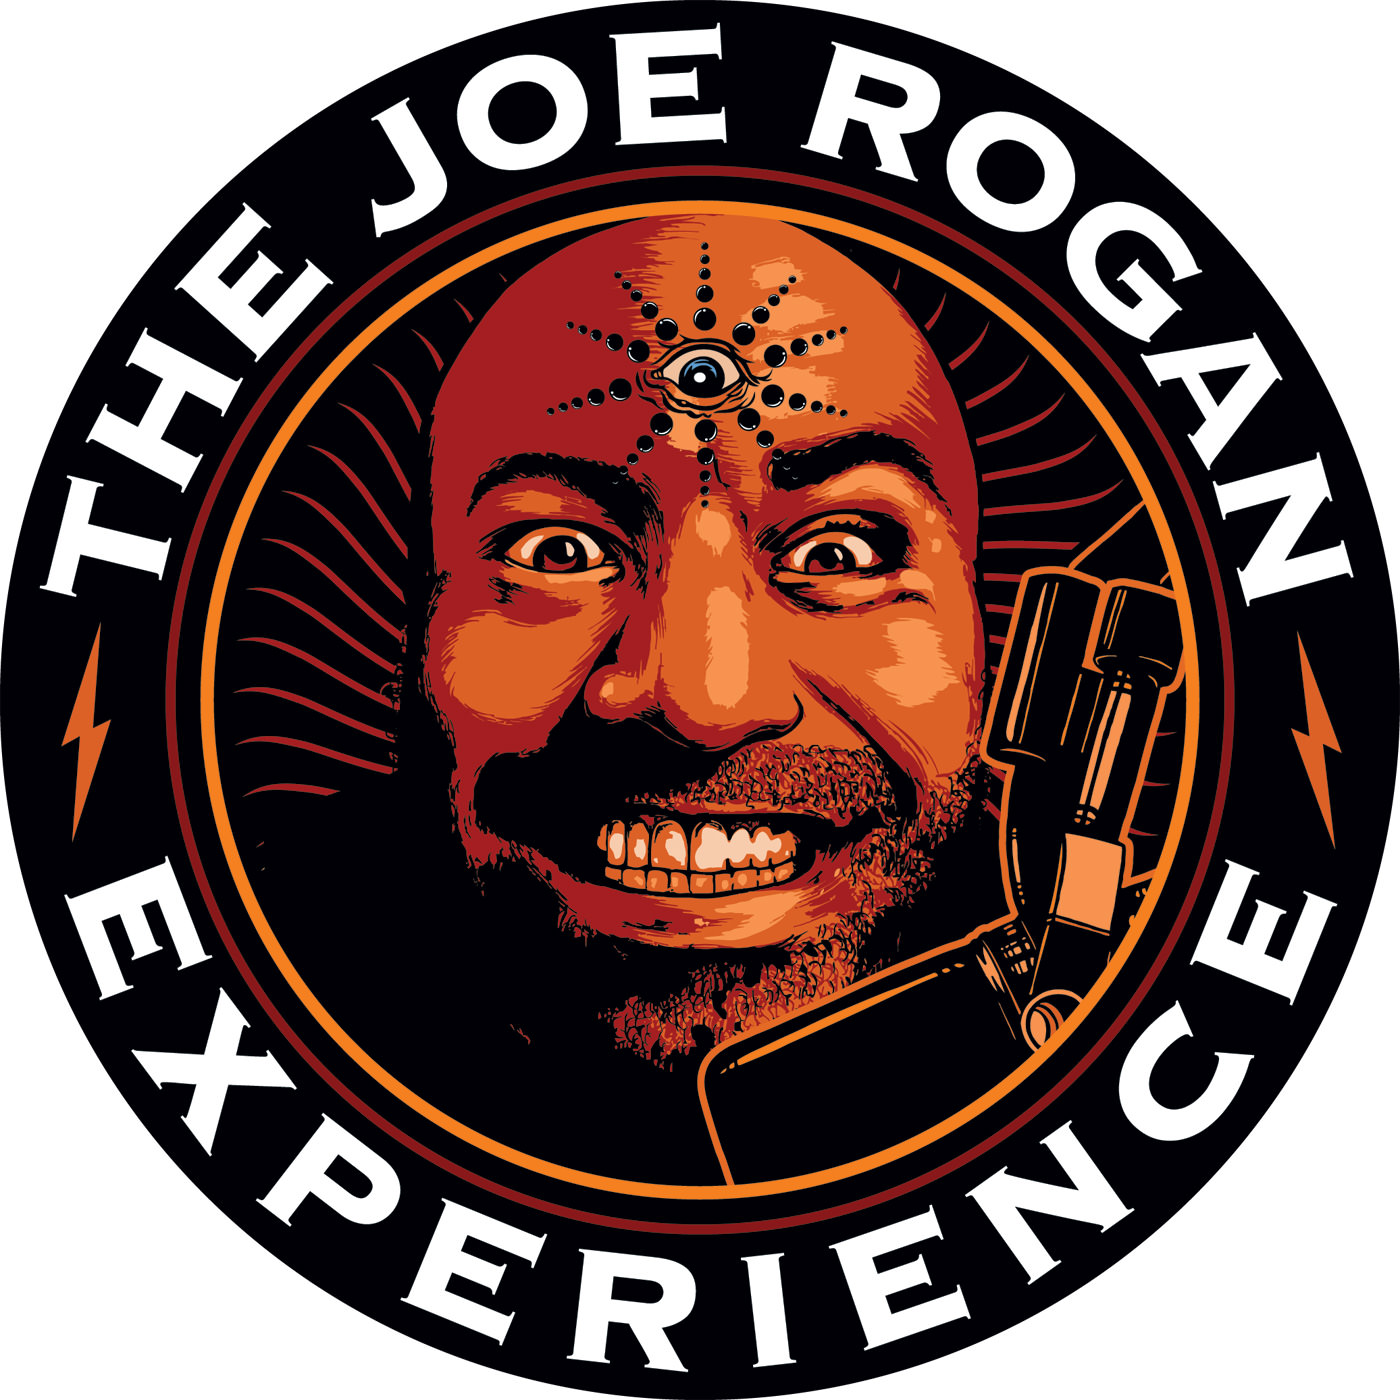 The Joe Rogan Experience  logo